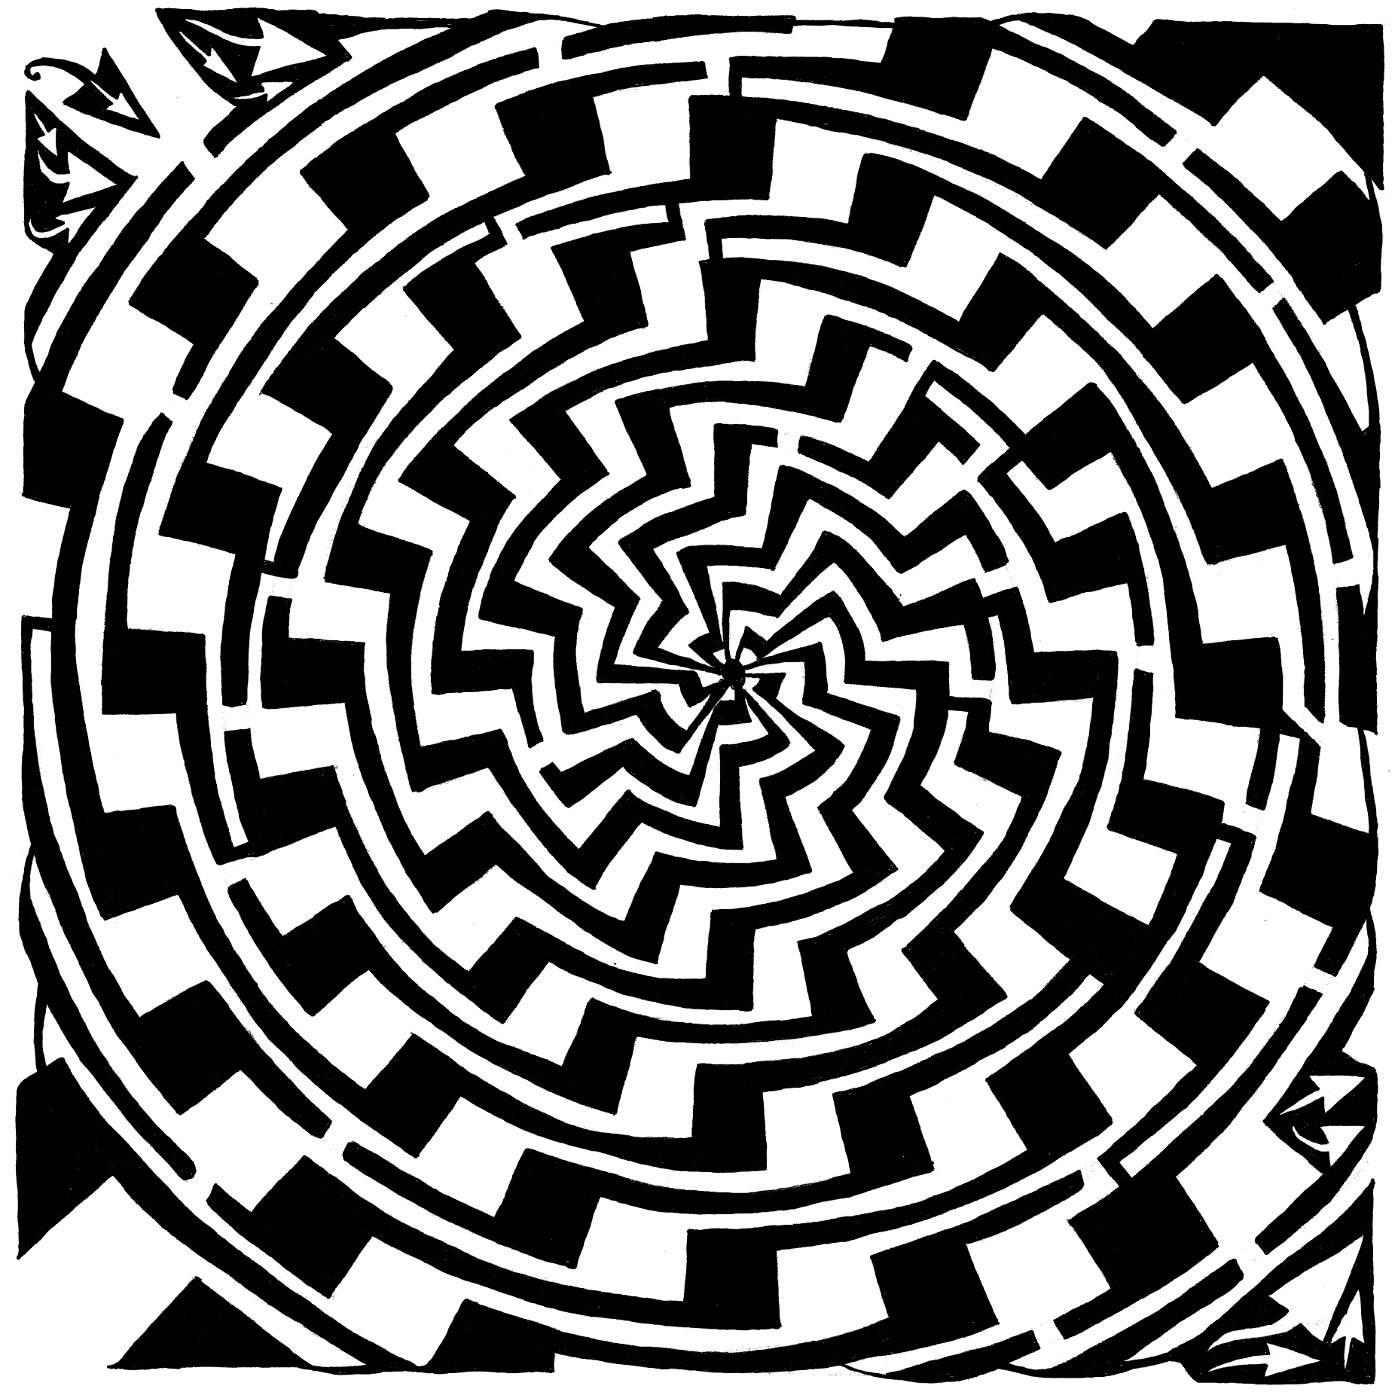 yonatan frimer jagged swirl optical illusion maze optical